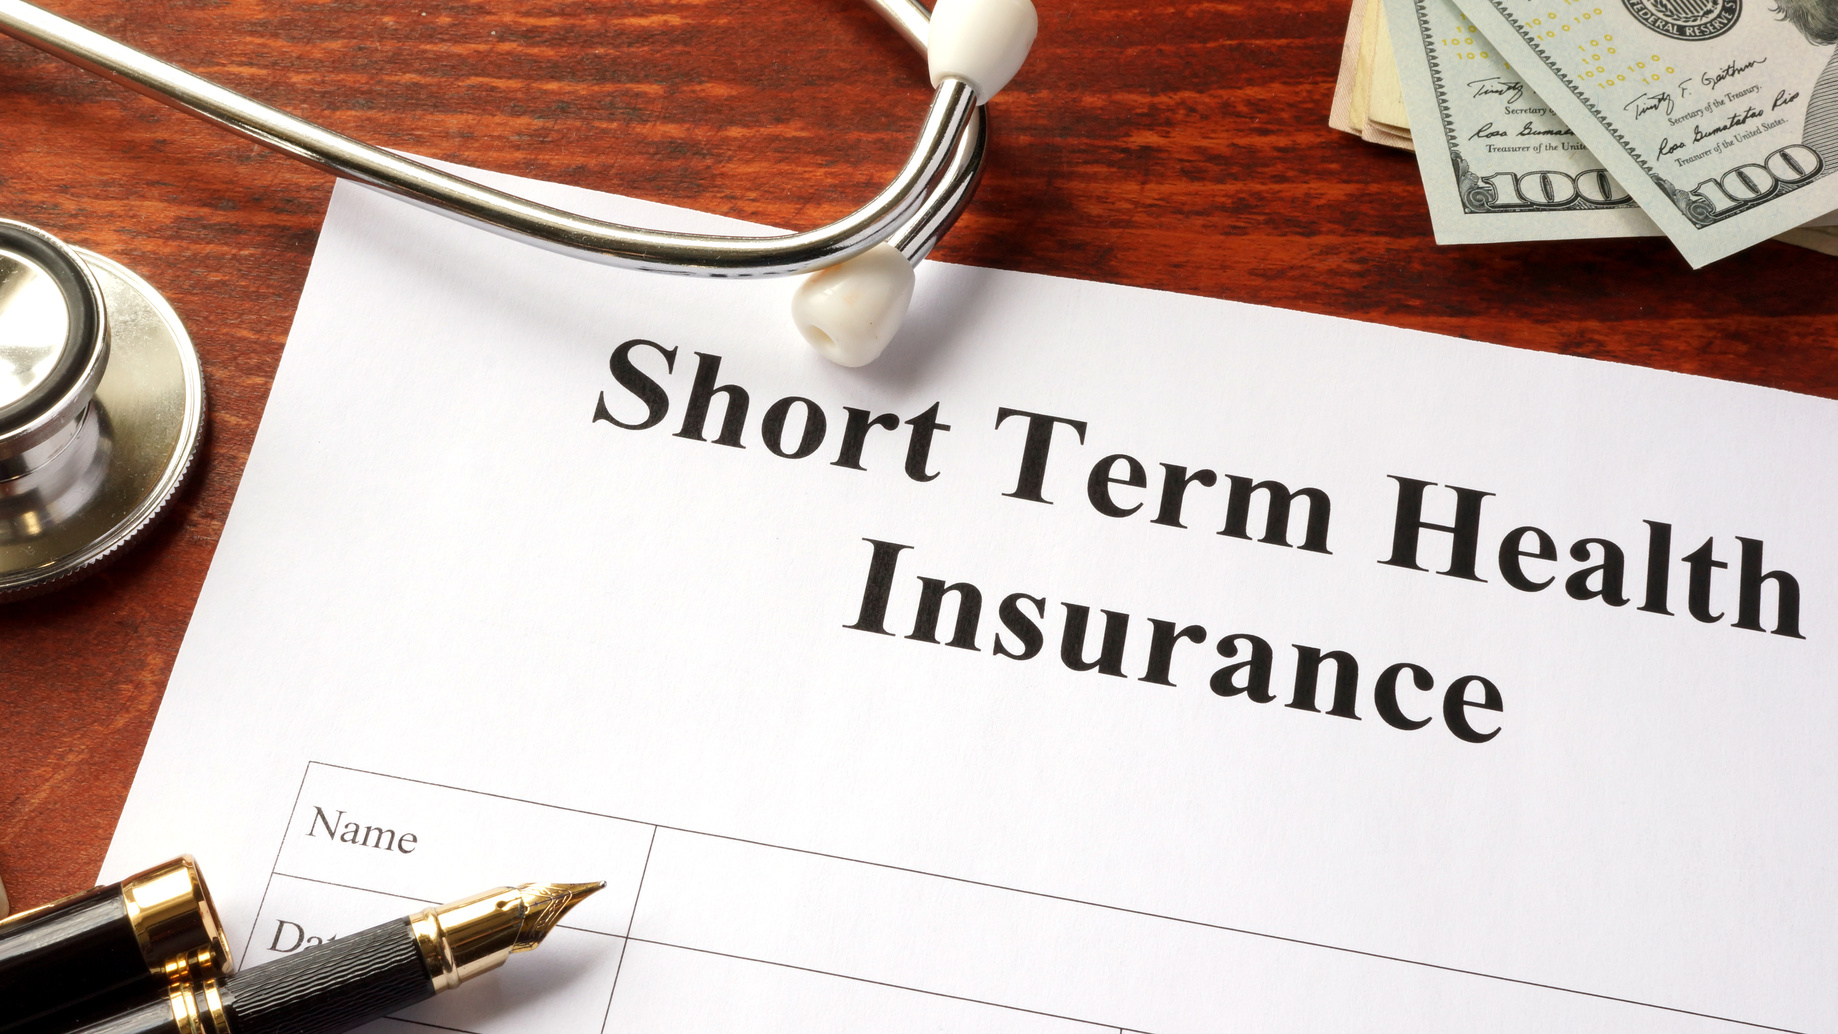 Miss the Obamacare Deadline? Short Term Health Insurance Might Be Just What You Need